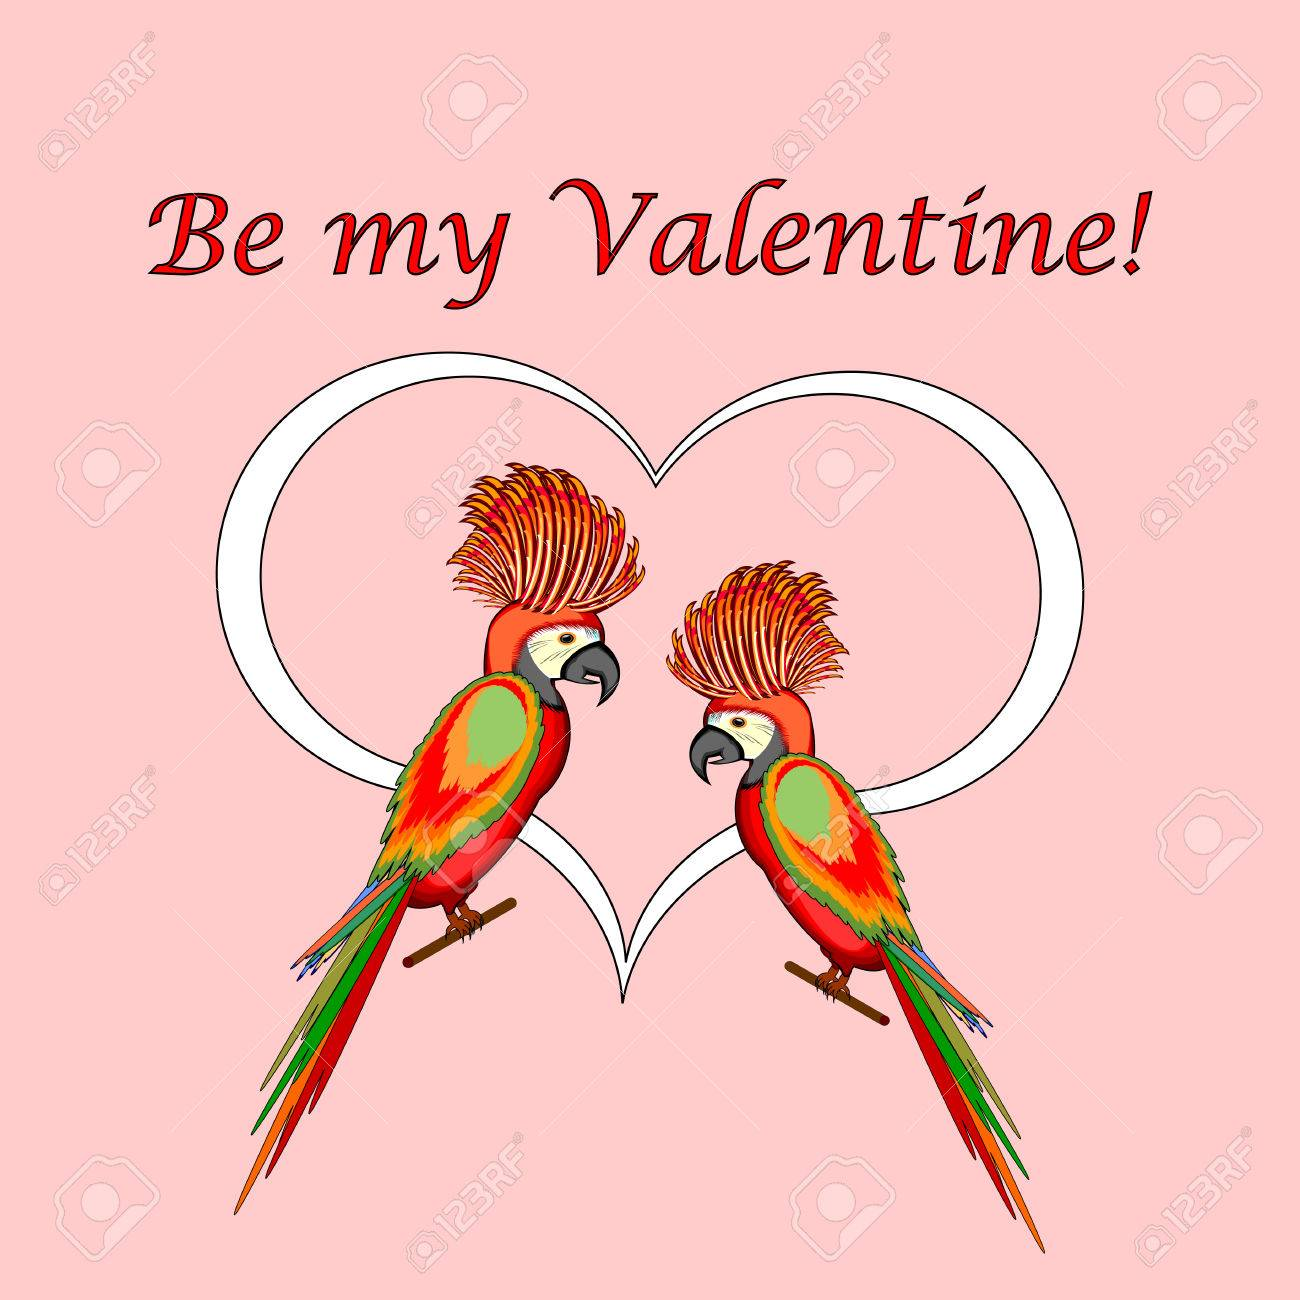 A Couple Of Macaw Parrots With A Heart And Words Be My Valentine – Valentines Day Post Card